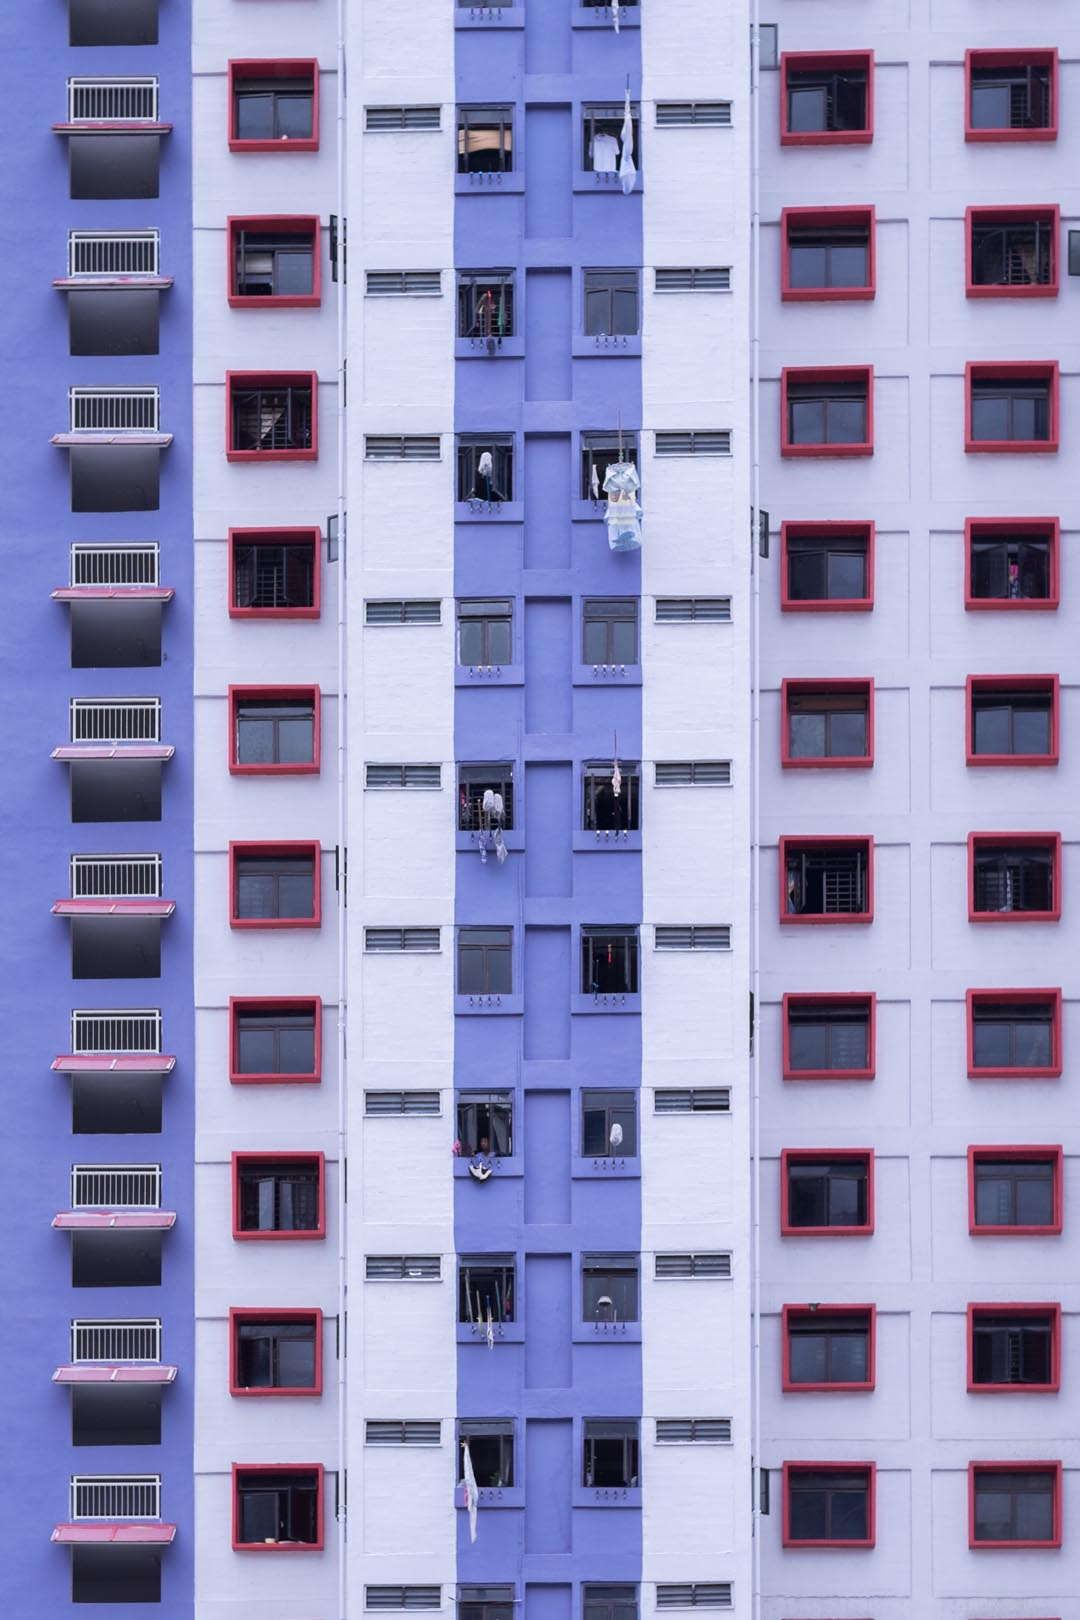 High-rise accommodation apartments for SIngaporeans